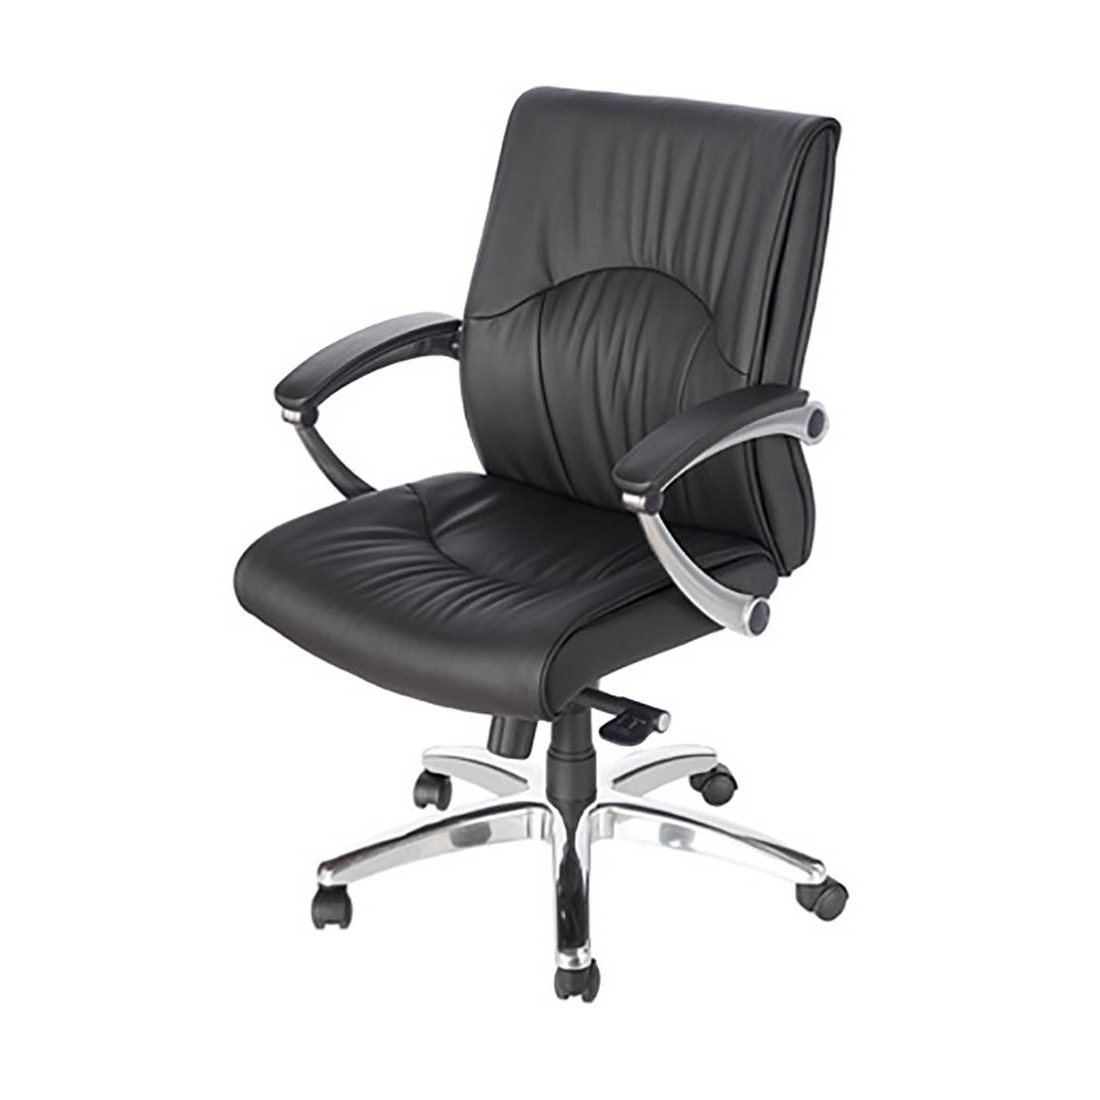 Madison Executive Office Chairs Inside 2018 Executive Office Chairs & Ergonomic Desk Seating For Sale (View 8 of 20)